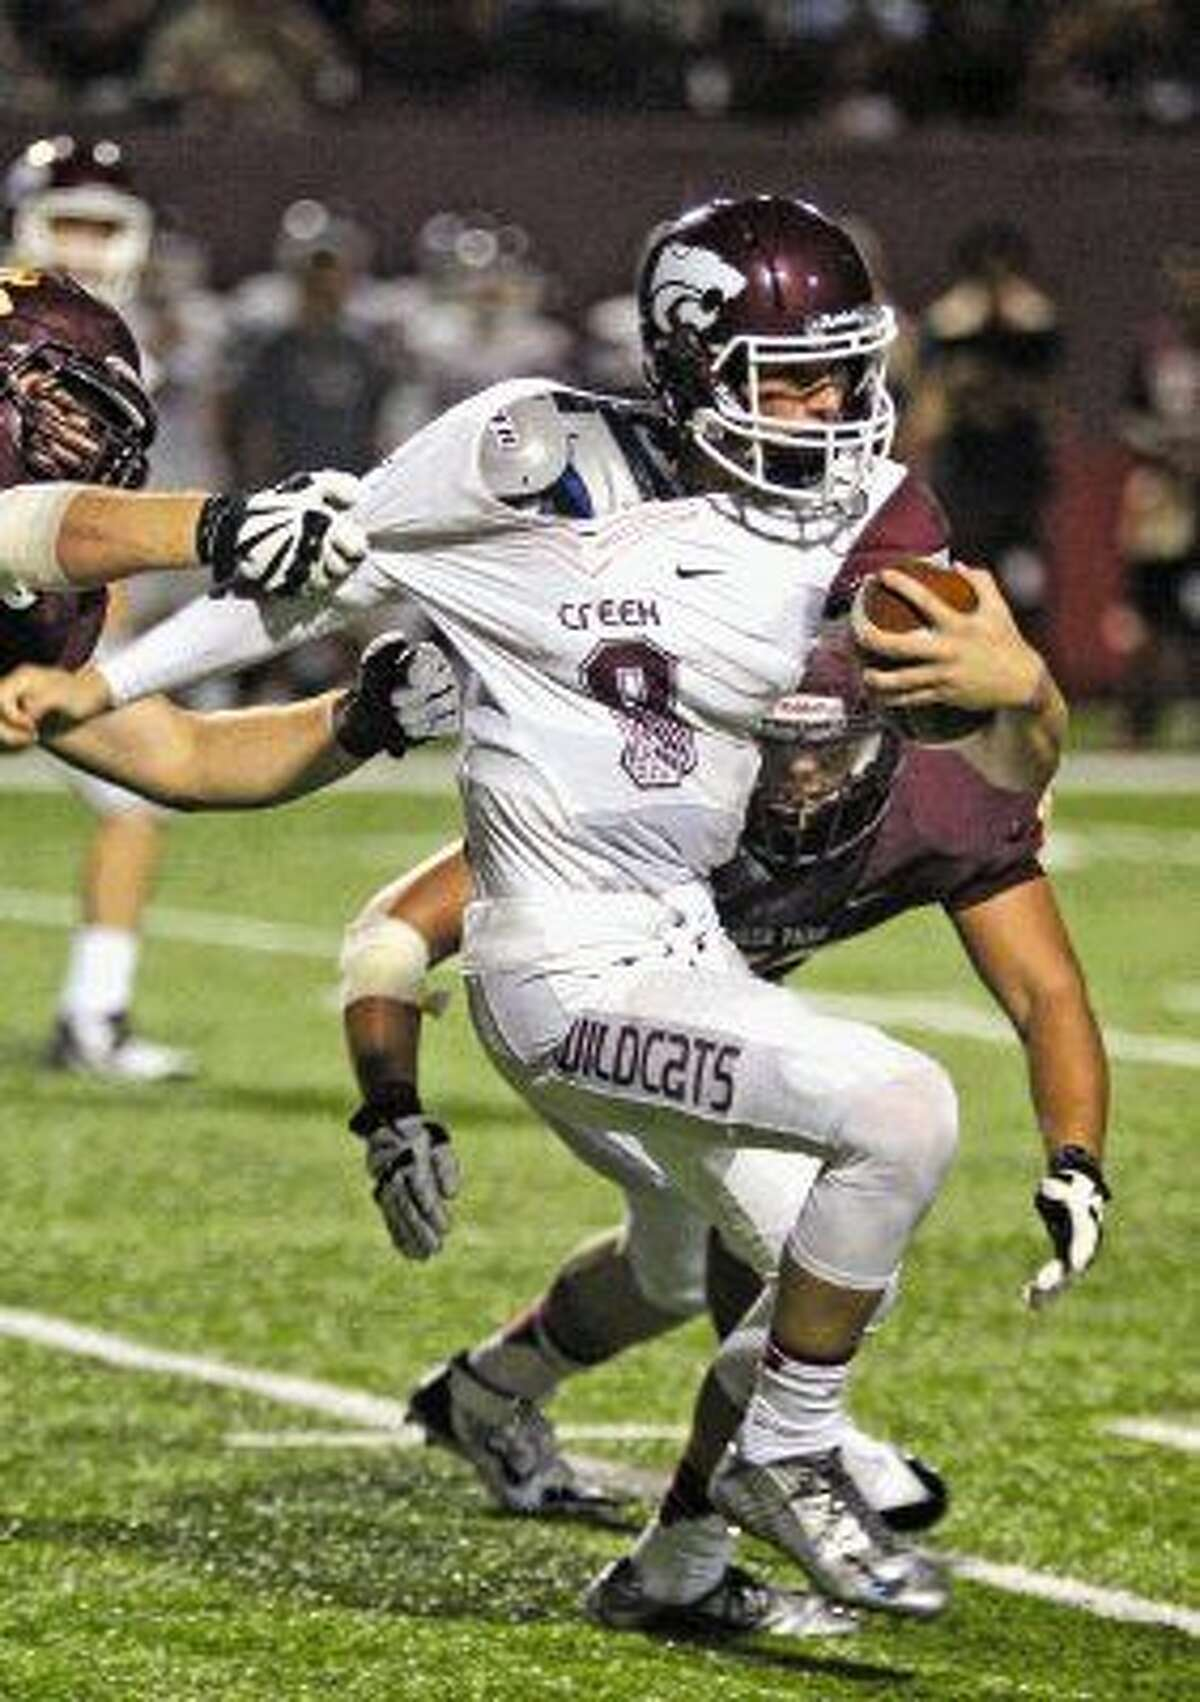 Photo by Kar B Hlava/Clear Creek quarterback Chase Hildreth gets held back by his jersey as Deer Park players close in for the tackle Friday night.